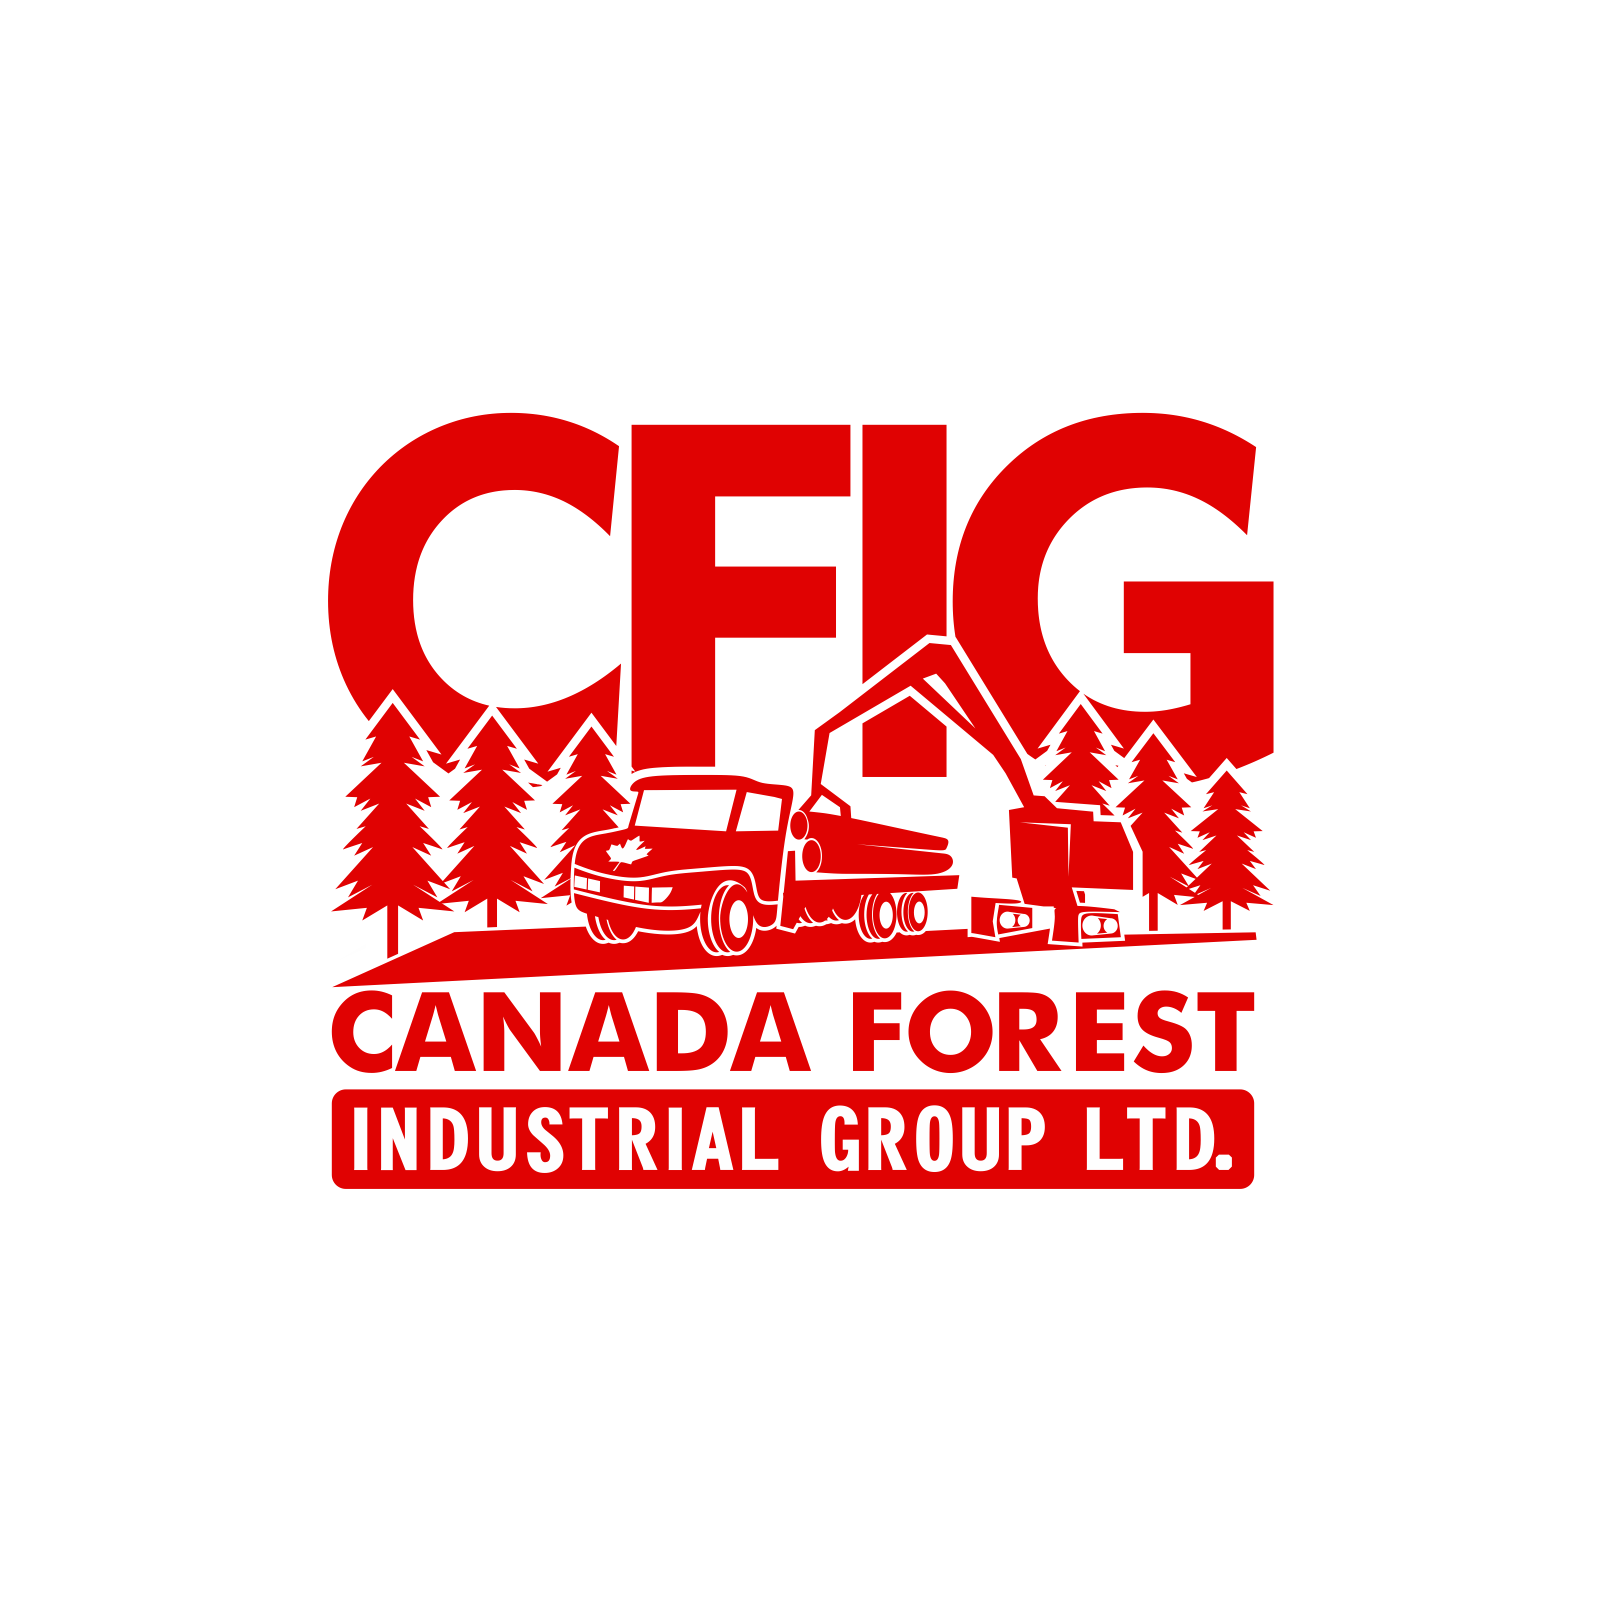 Logo Design by moisesf - Entry No. 90 in the Logo Design Contest Creative Logo Design for Canada Forest Industrial Group Ltd..